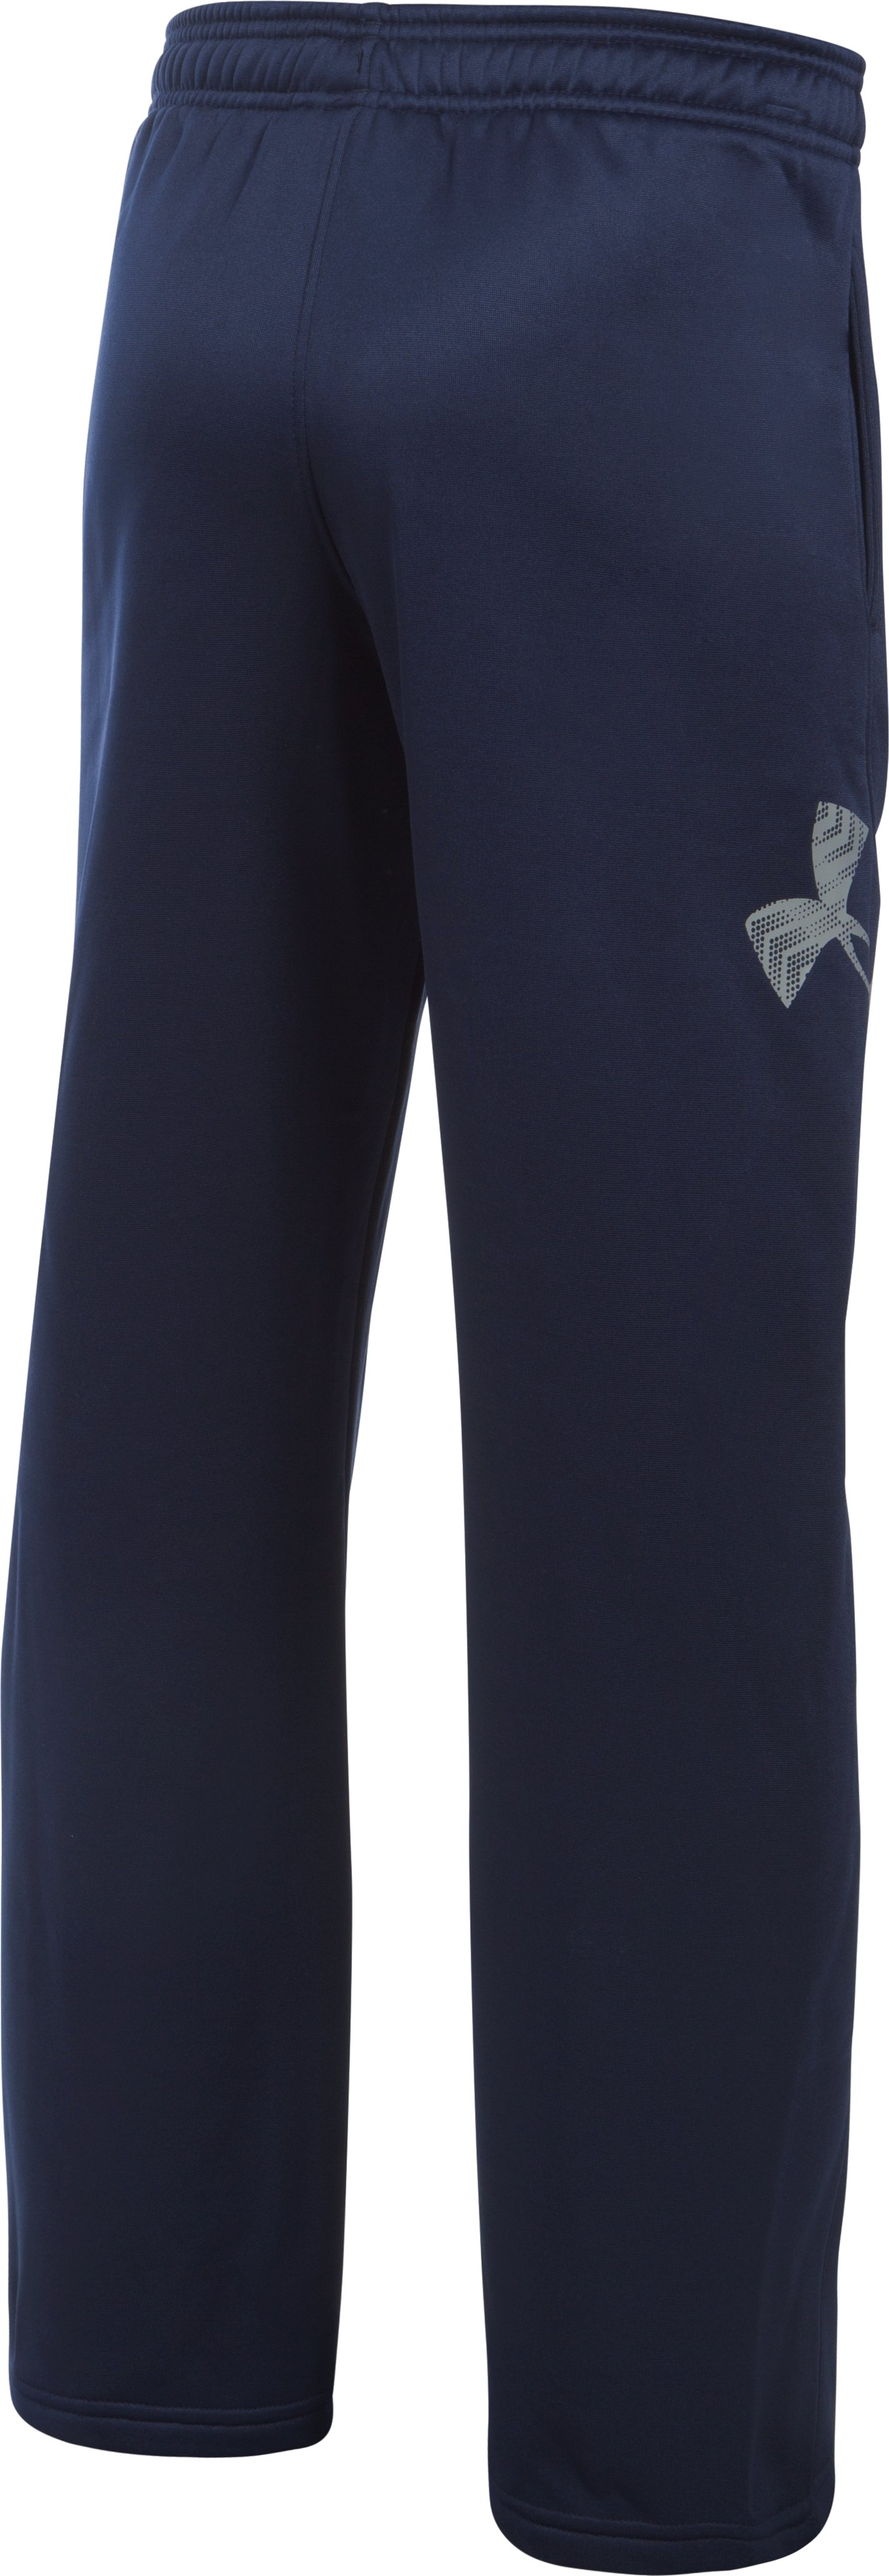 Boys' Notre Dame UA Big Logo Pants, Midnight Navy, undefined